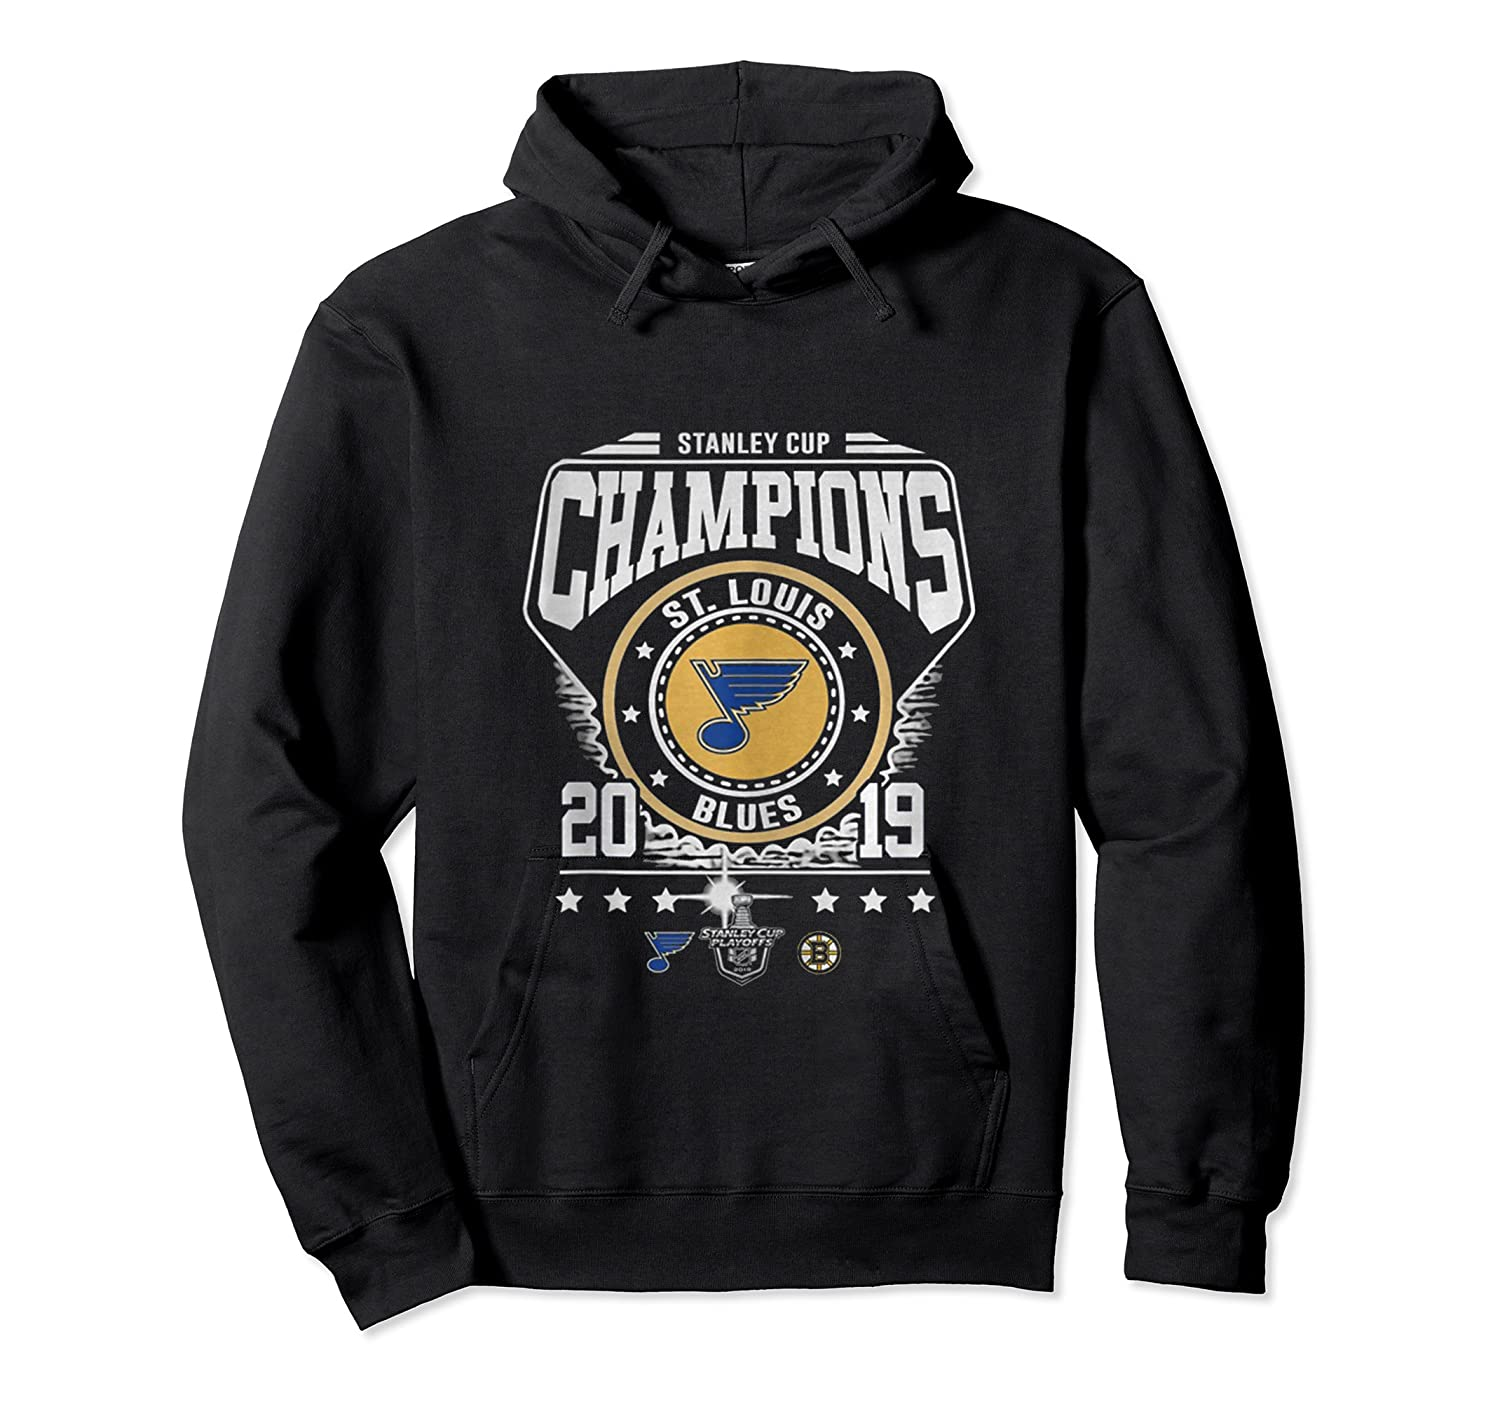 Best Gift Stanley St-louis Cup Blues Champions 2019 Tank Top Shirts Unisex Pullover Hoodie